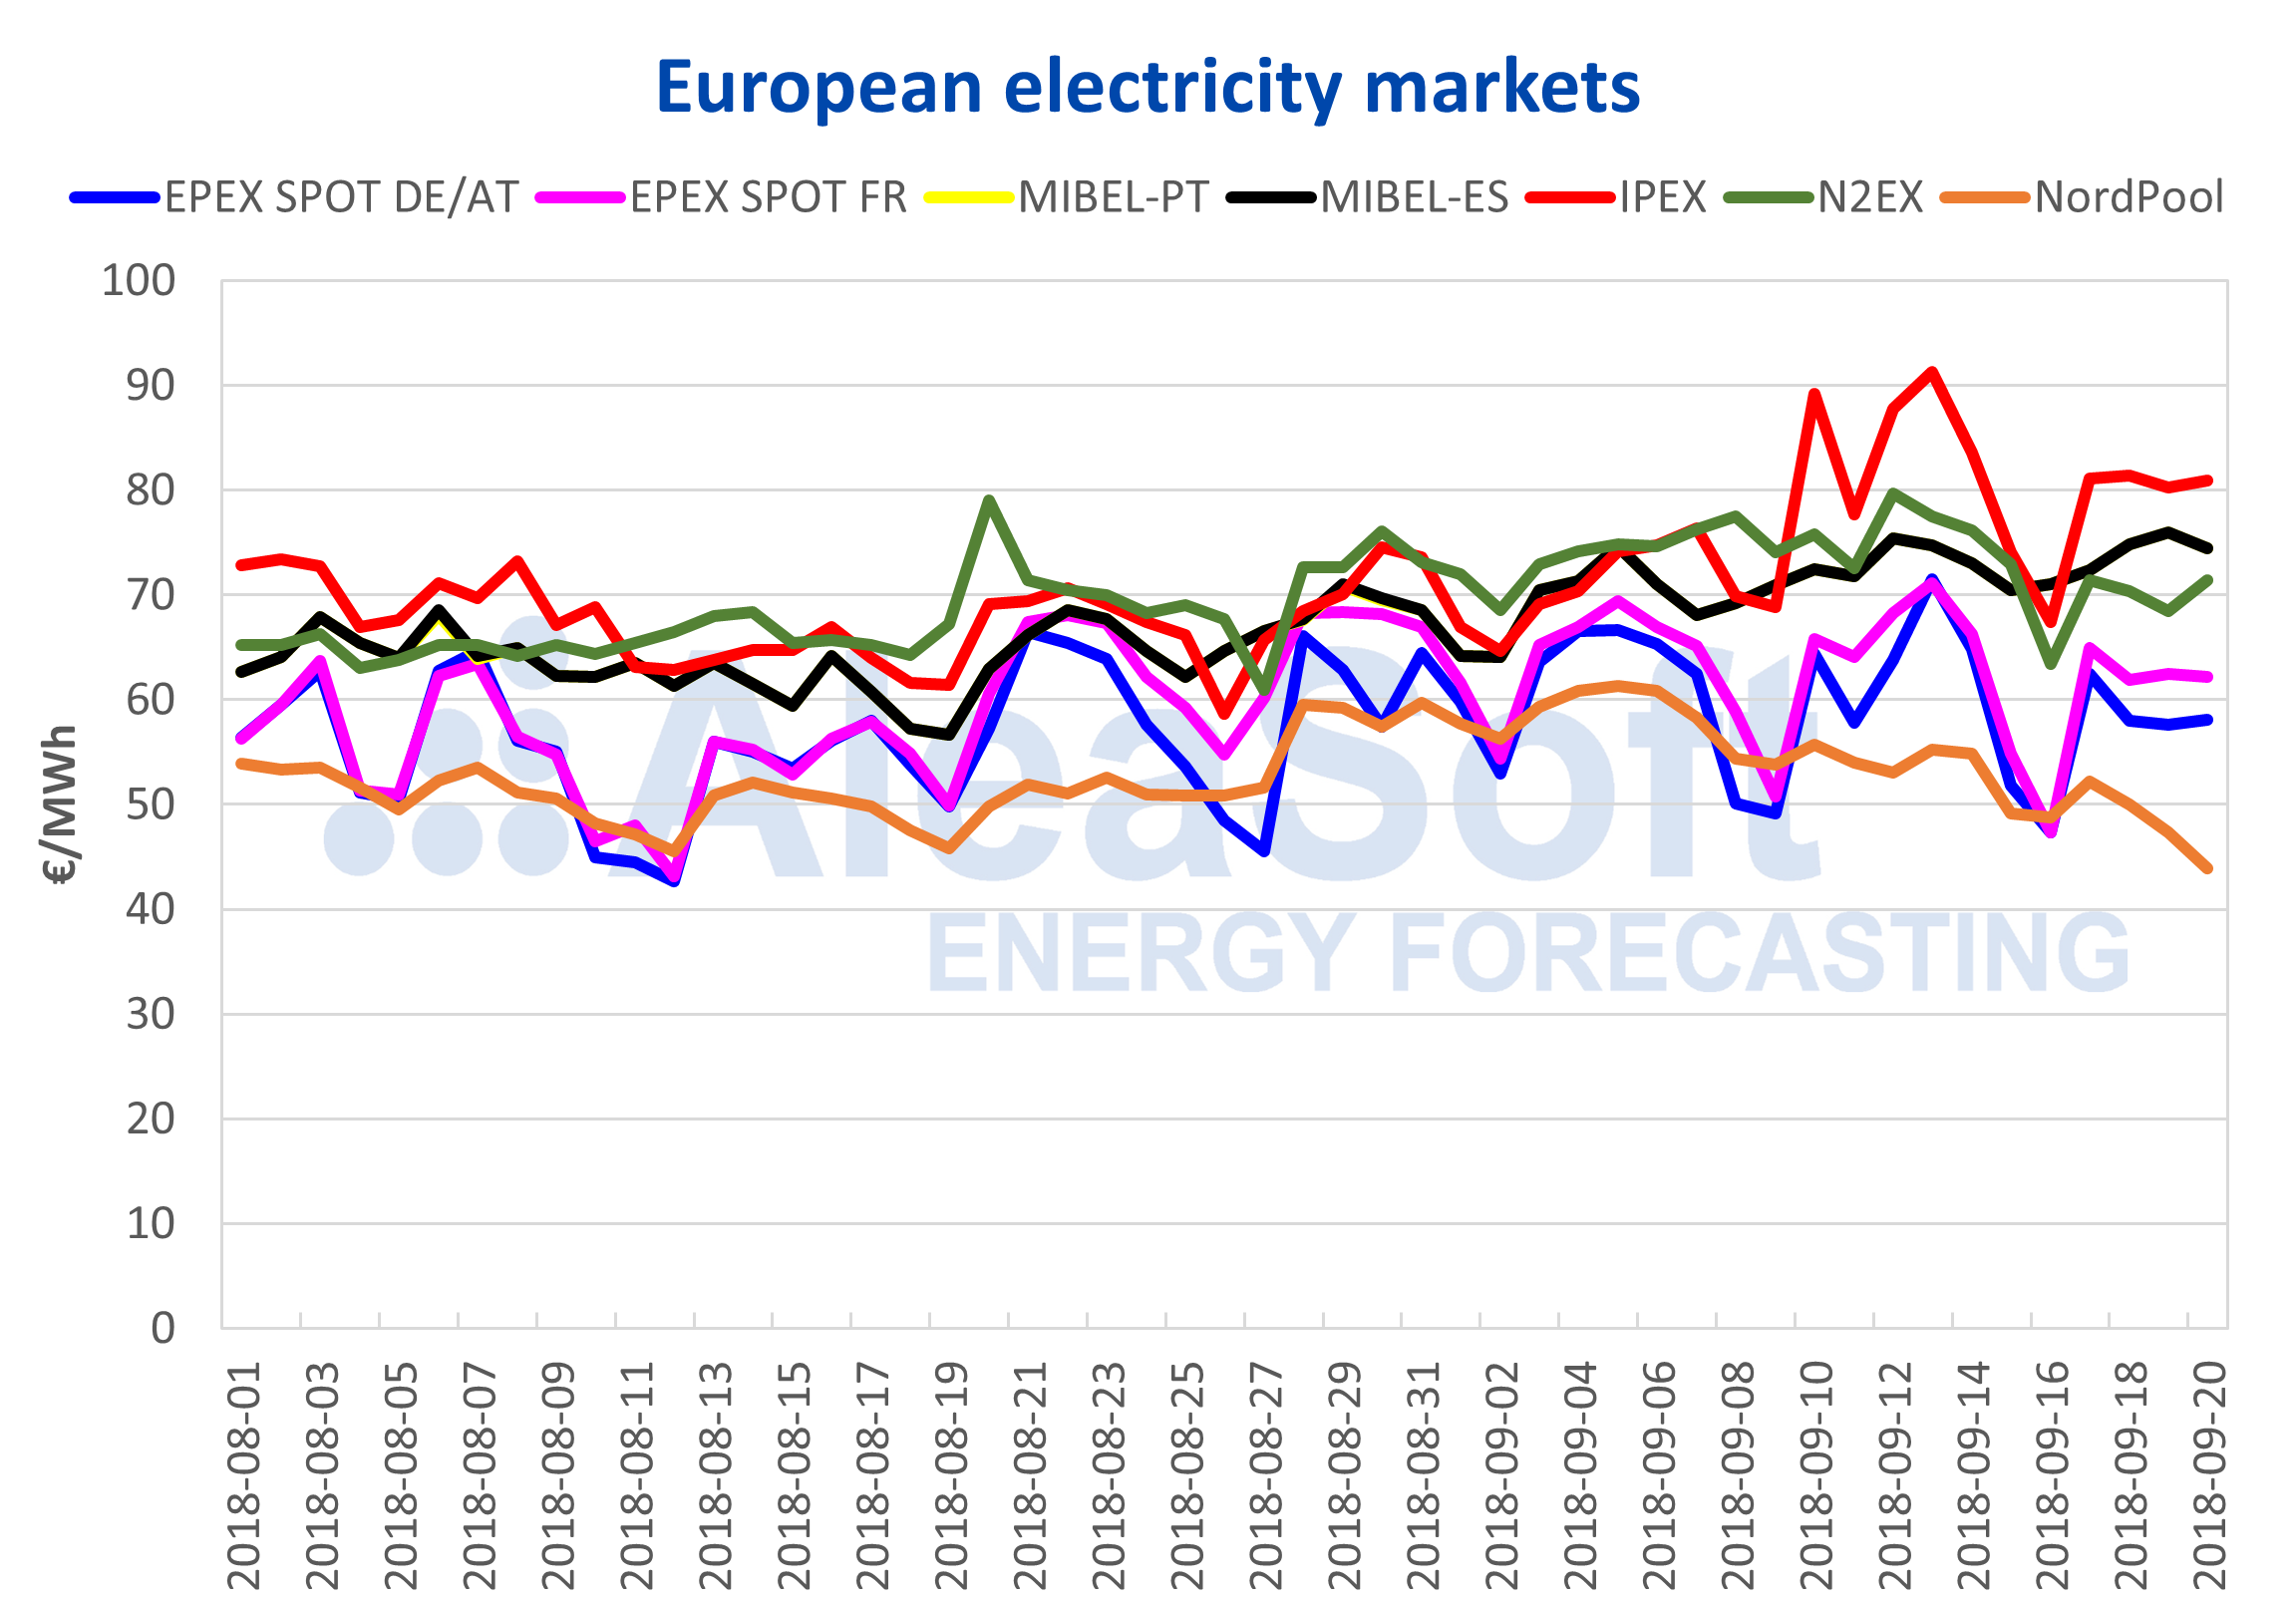 AleaSoft - Fall of the electricity futures for Spain and Portugal